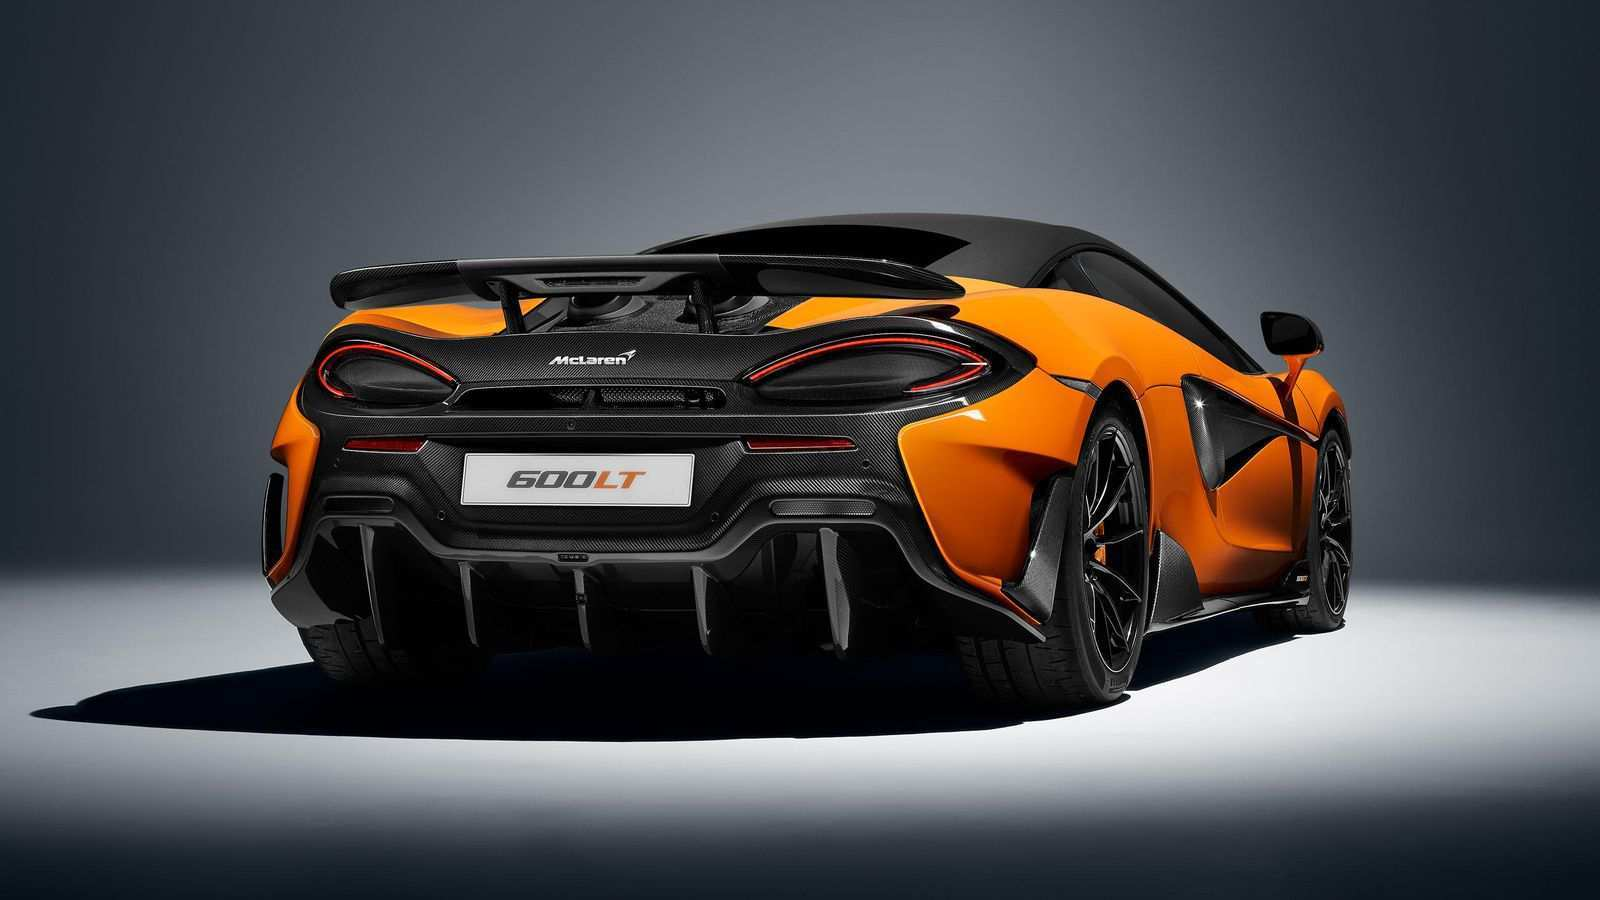 92 All New 2019 Mclaren Top Speed Engine